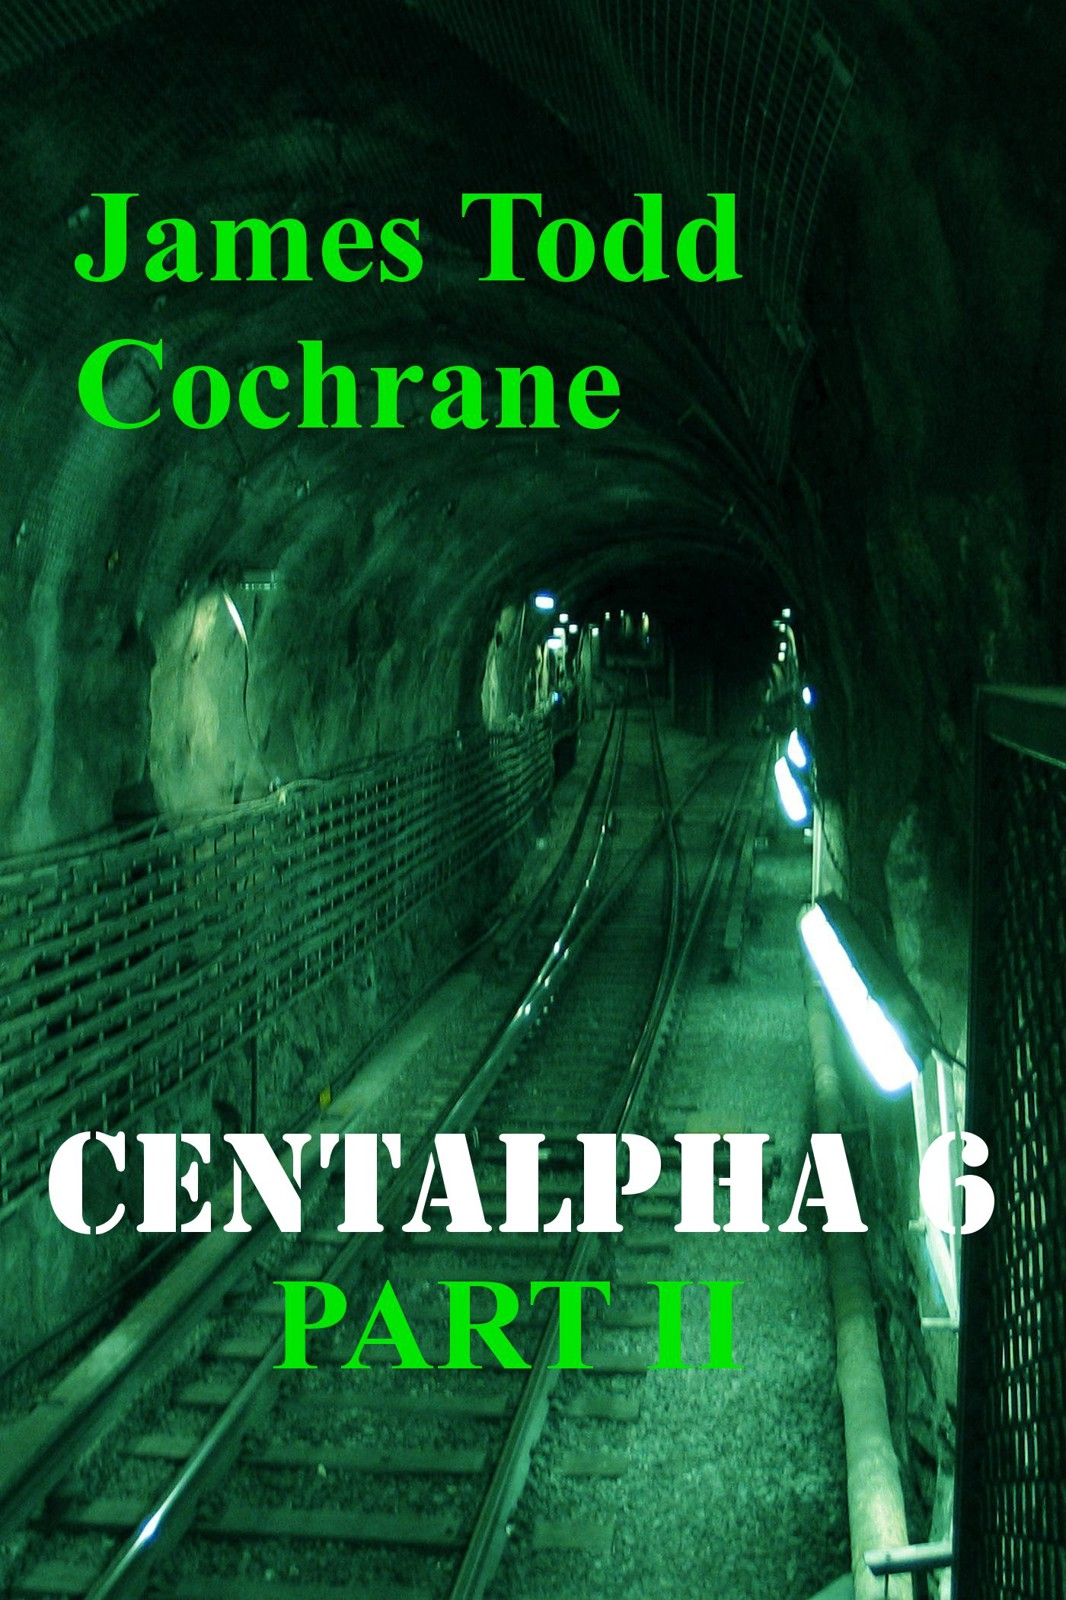 Centalpha 6 Part II By: James Todd Cochrane